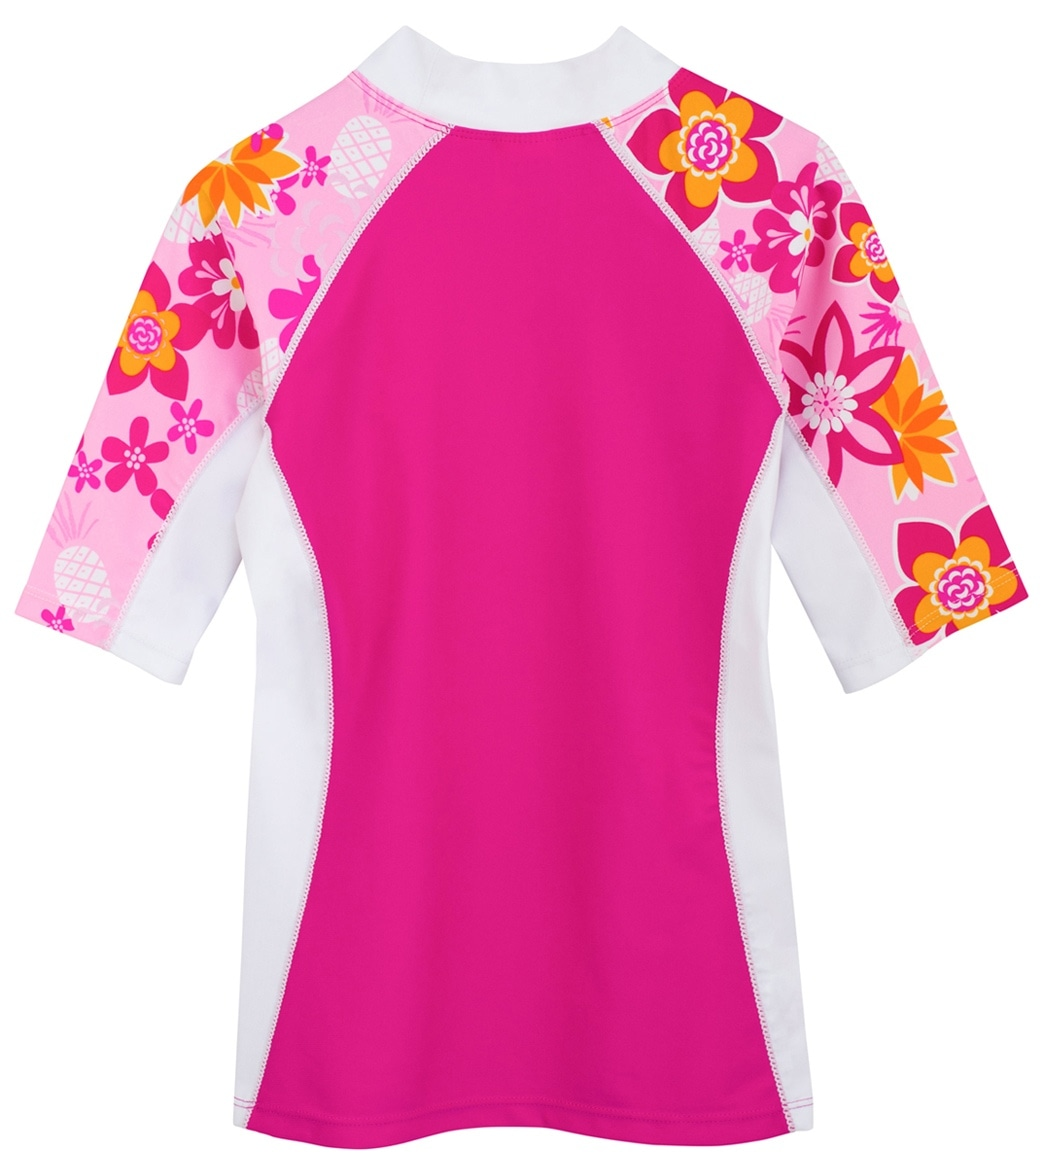 60c80762c60 Tuga Girls' Tropical Punch Seaside Short Sleeve Rash Guard (Toddler, Little  Kid, Big Kid) at SwimOutlet.com